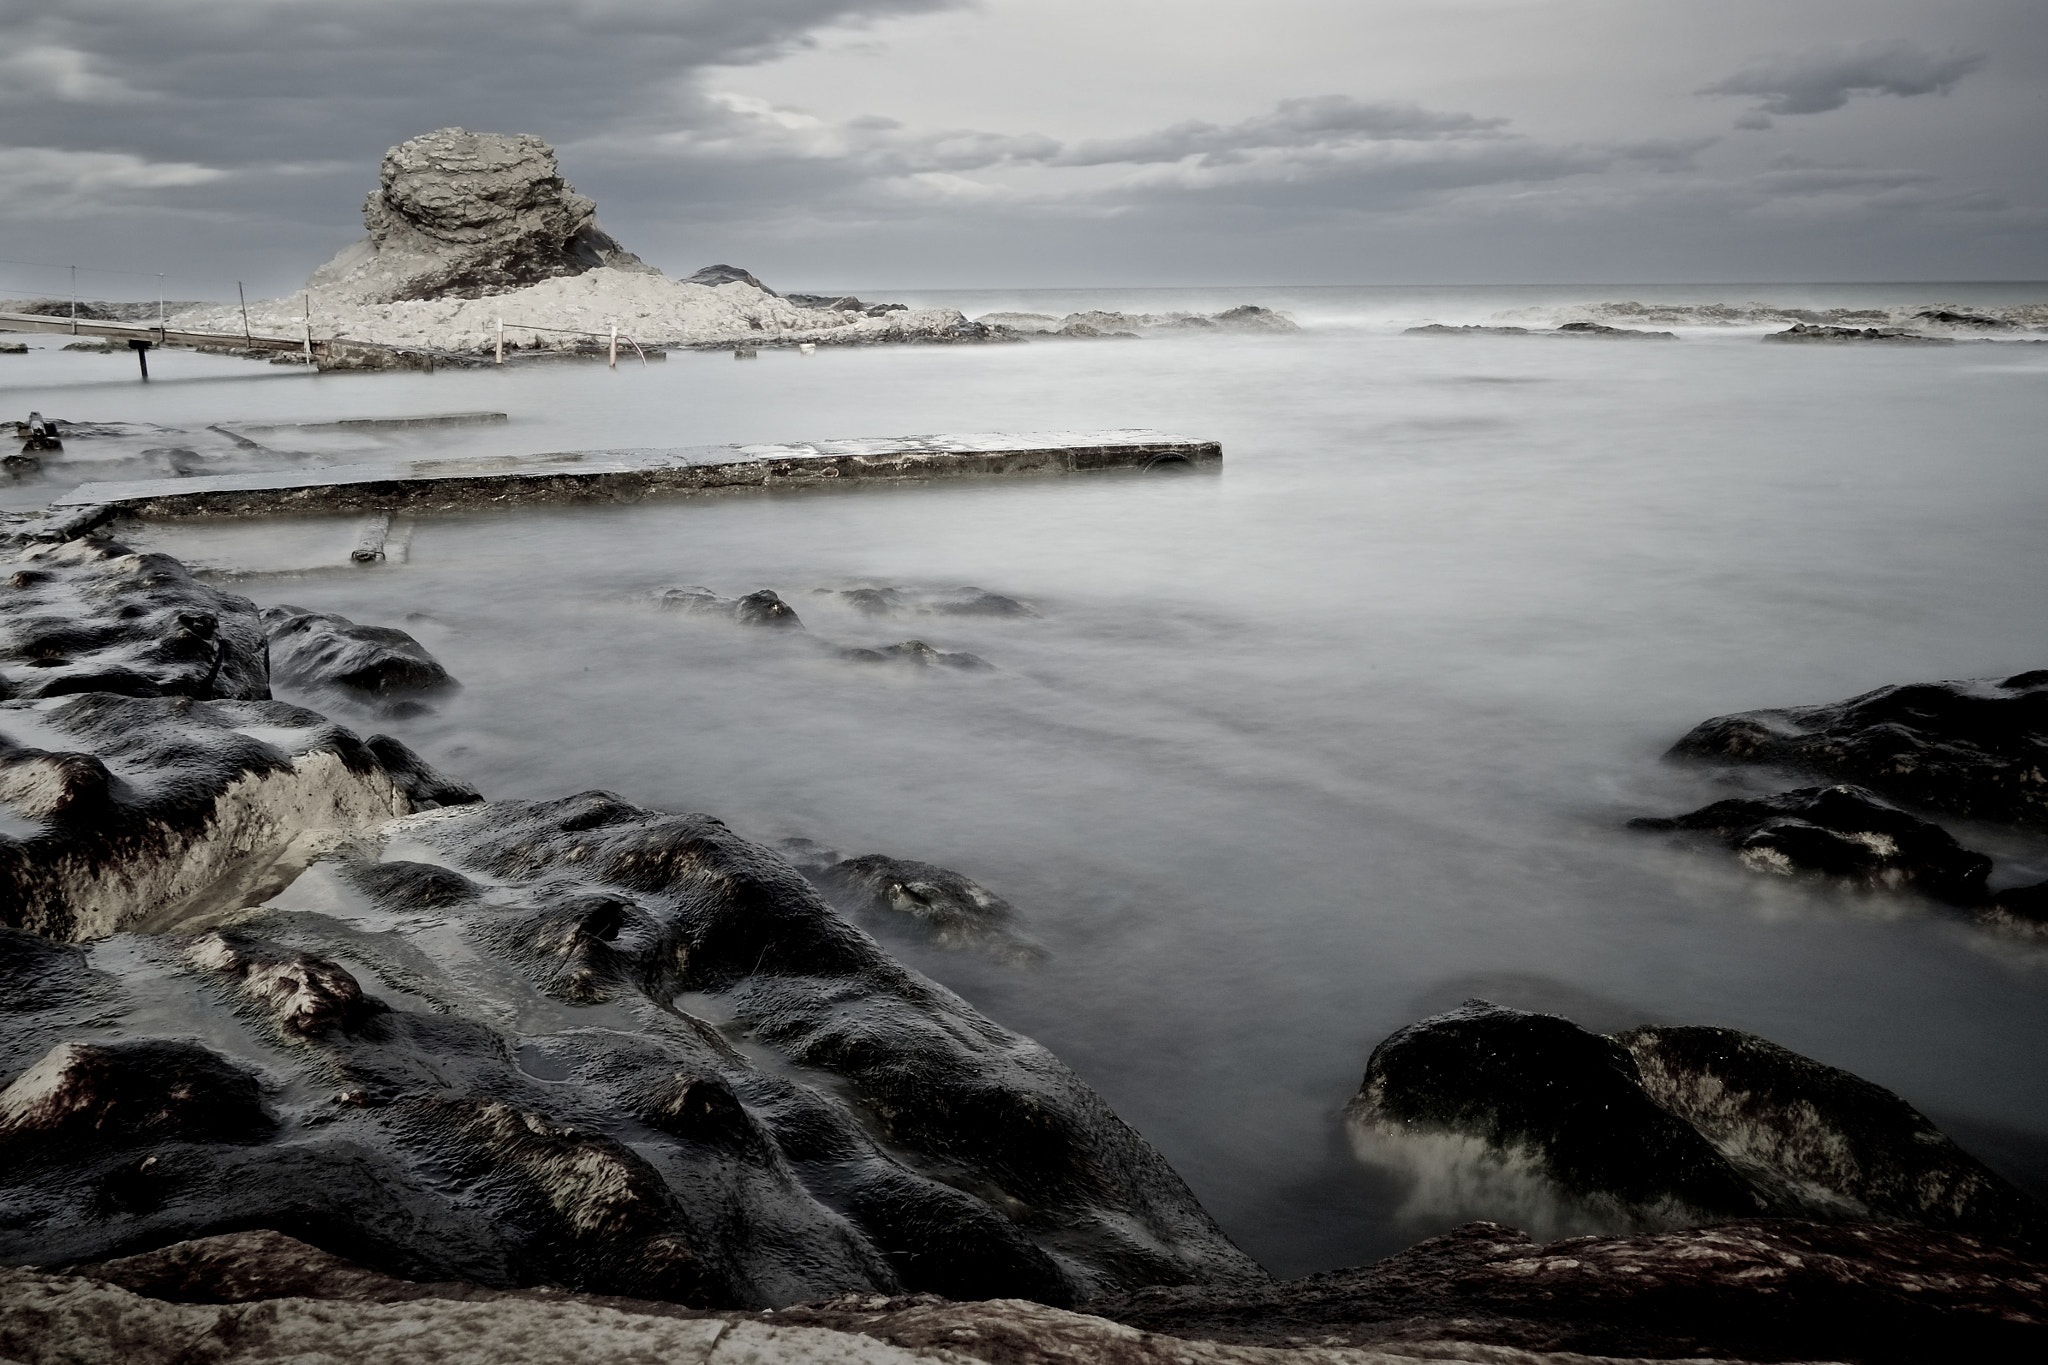 Photograph About rocks and water by Renato Petetti on 500px